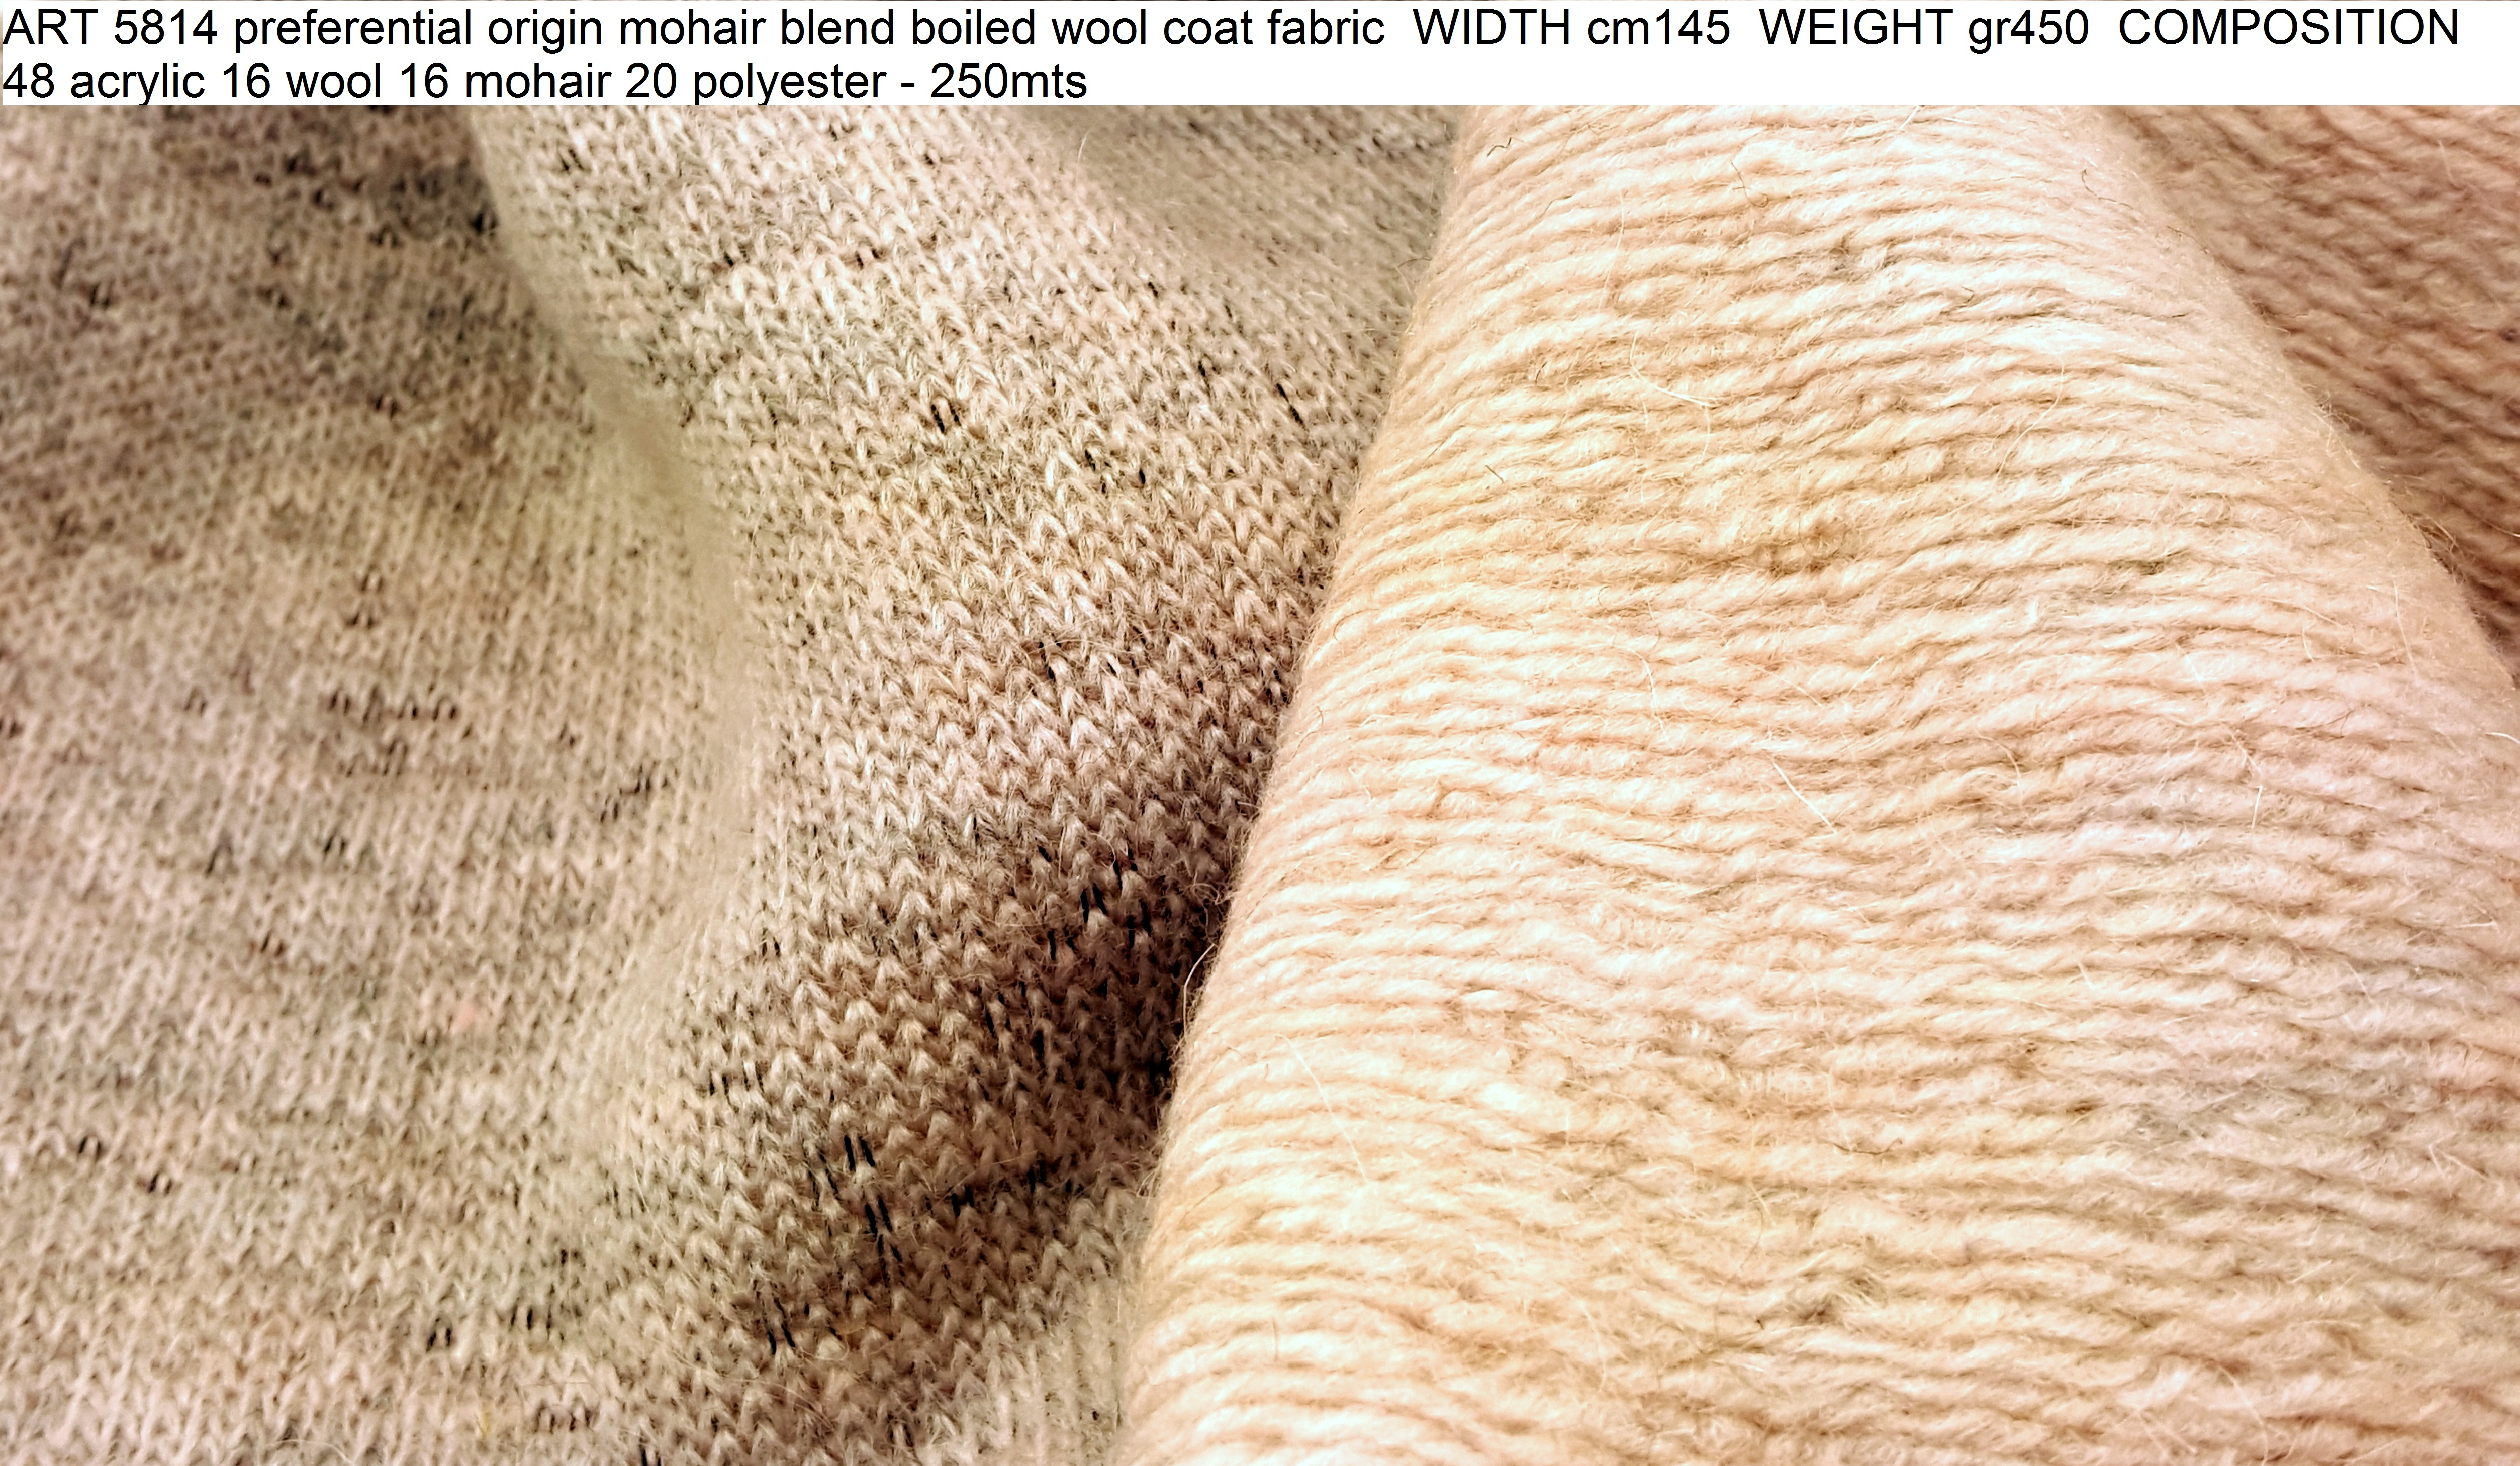 ART 5814 preferential origin mohair blend boiled wool coat fabric WIDTH cm145 WEIGHT gr450 COMPOSITION 48 acrylic 16 wool 16 mohair 20 polyester - 250mts